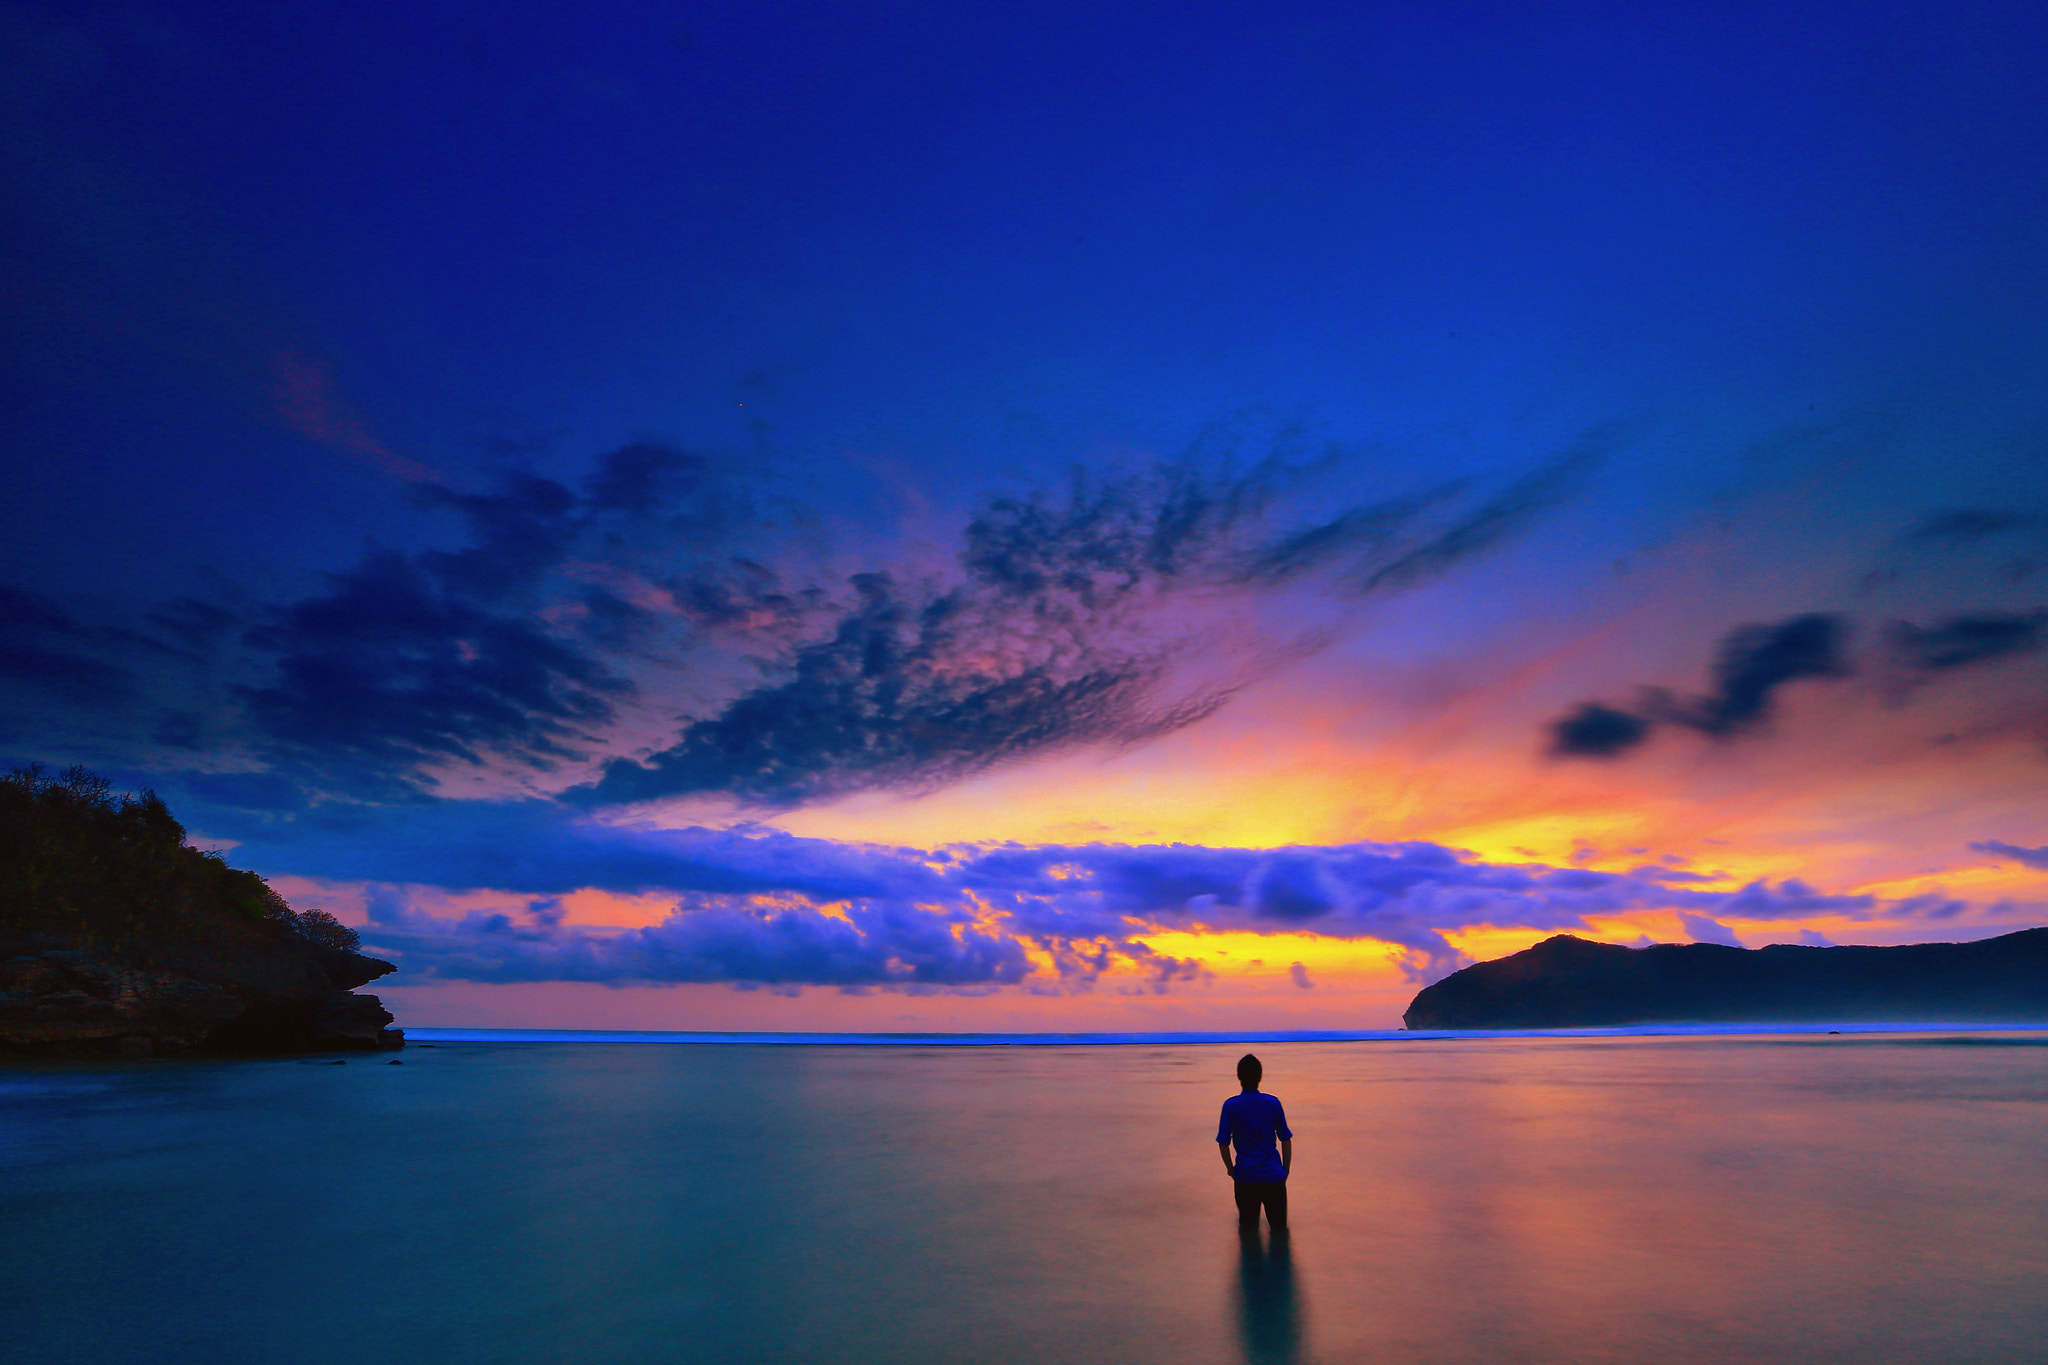 Photograph Standing Alone by Iman Firmansyah on 500px